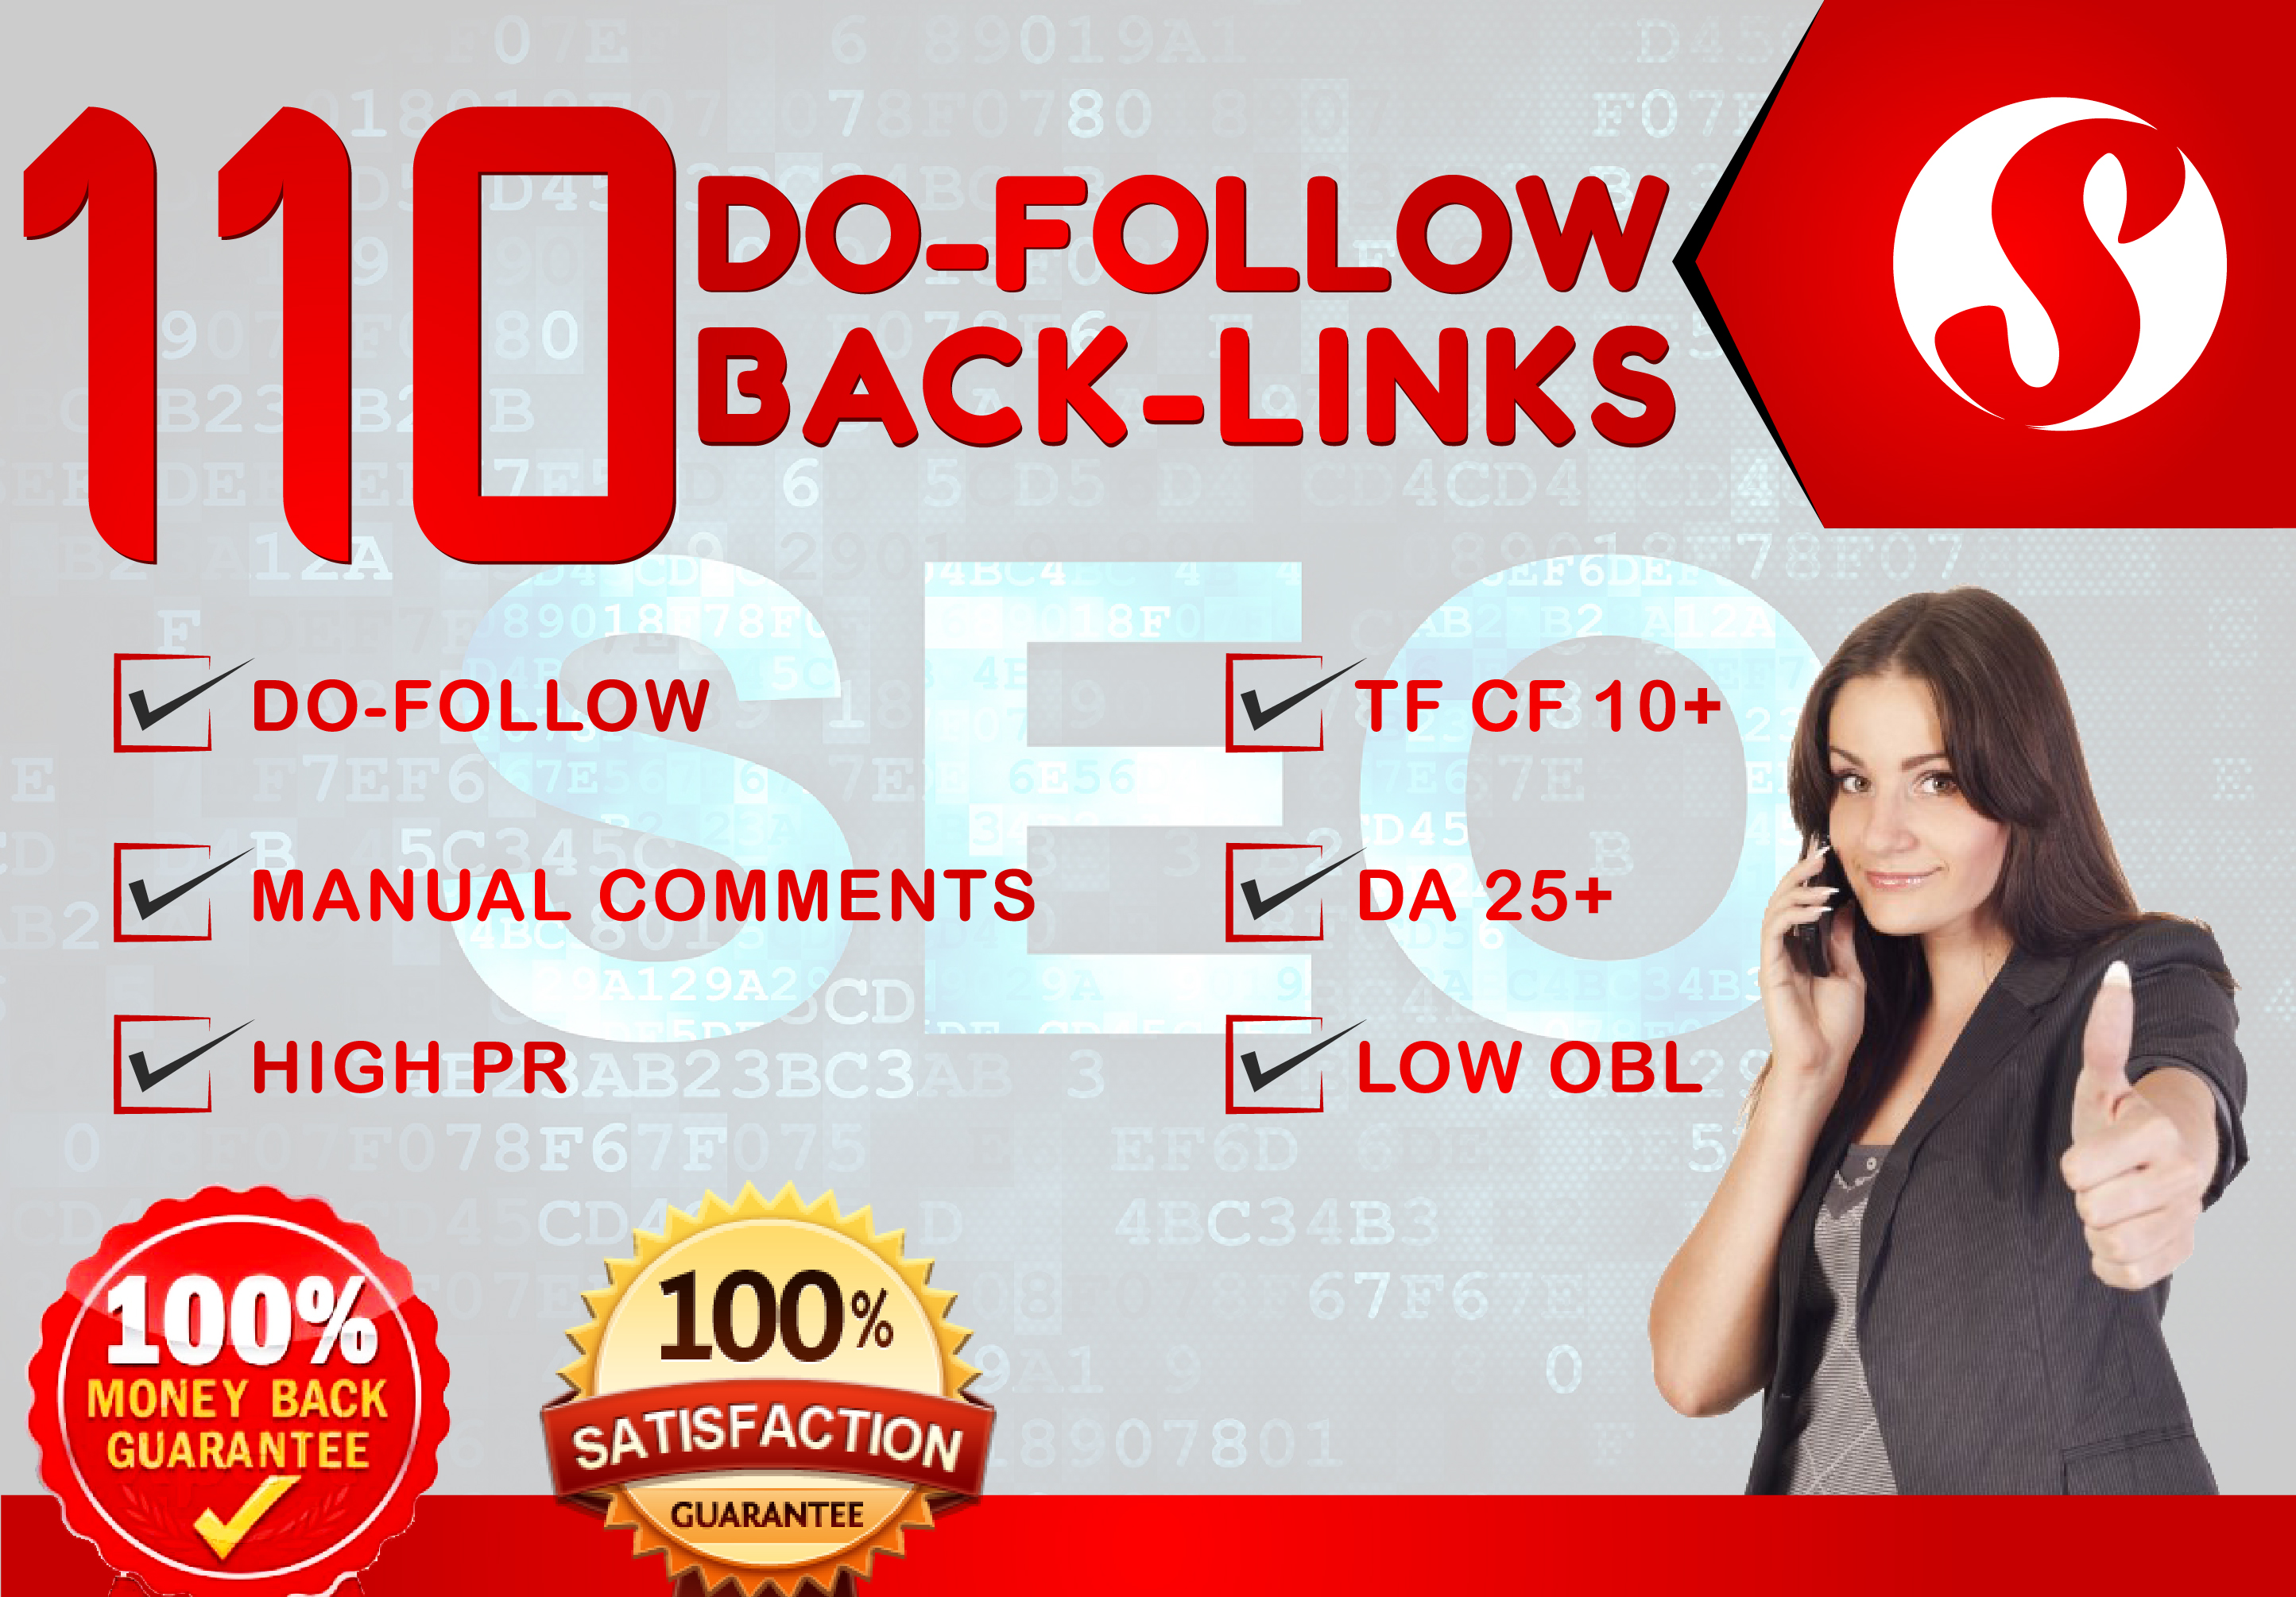 do 110 high pr 2 to 7 backlinks with low obl tf/cf 10+ and da 25+